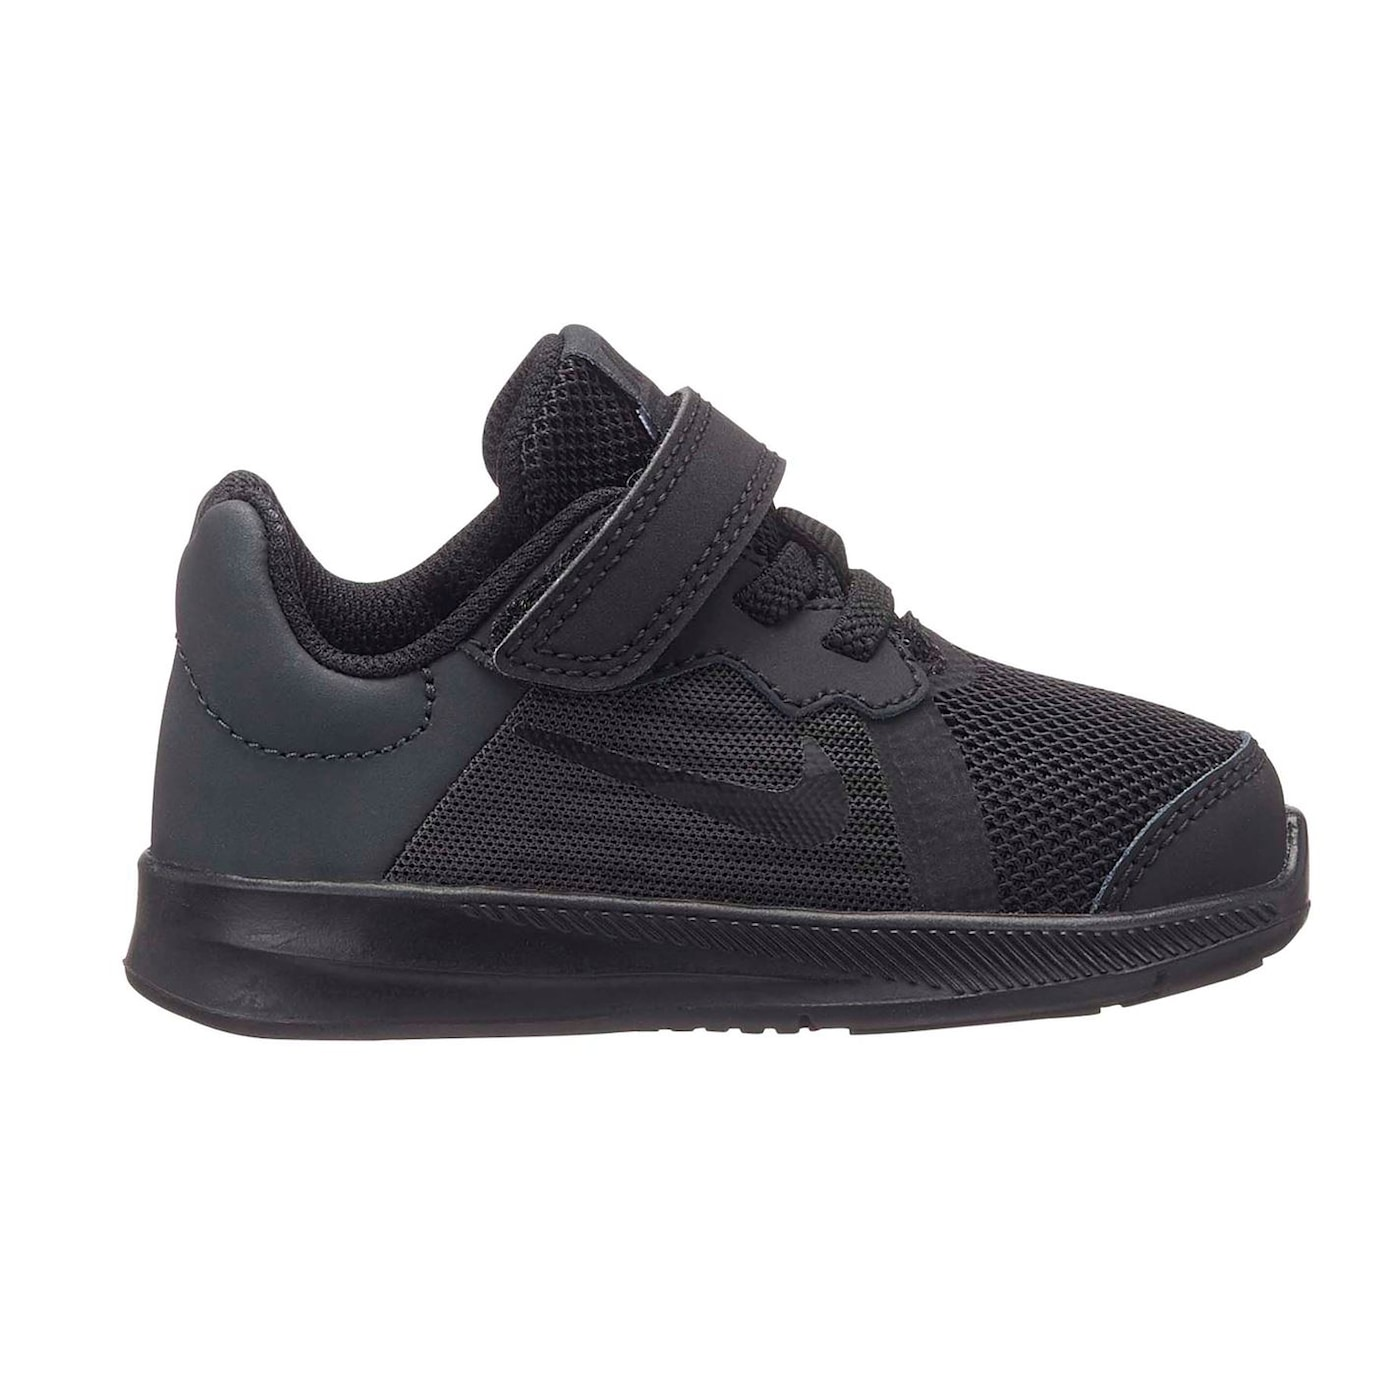 Nike Downshifter 8 Infant Boys Trainers